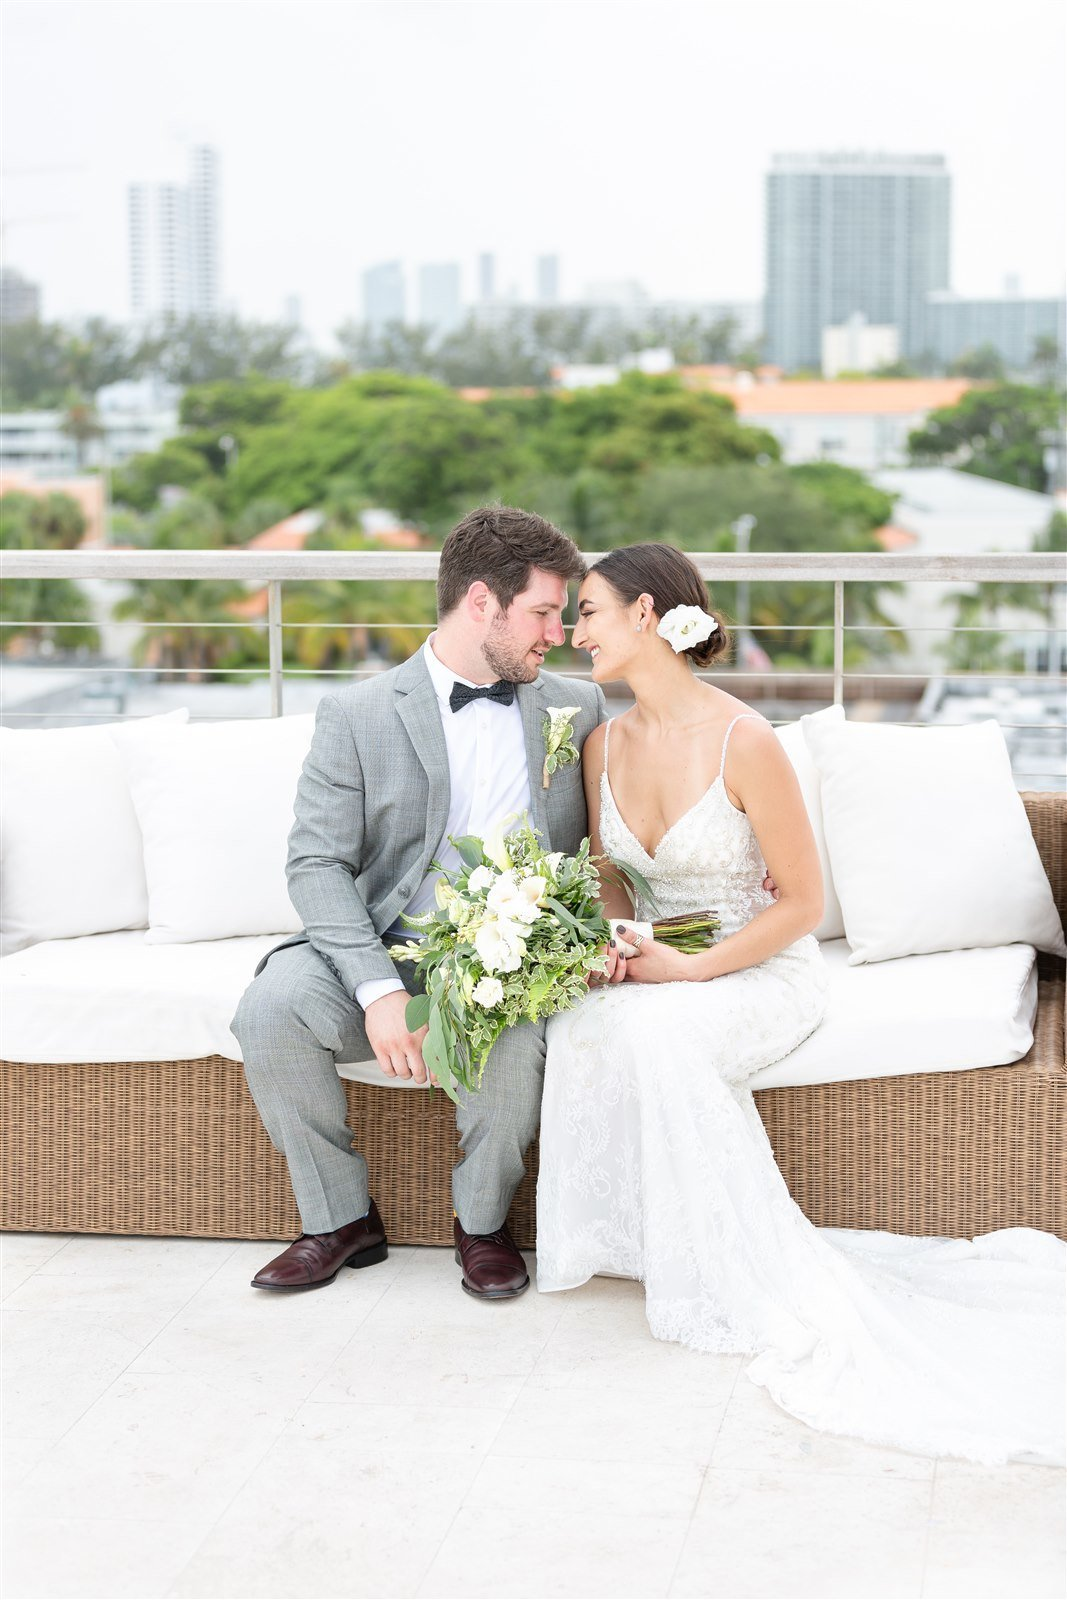 Betsy-Hotel-Miami-Beach-Wedding-Bride-and-Groom-Chris-and-Micaela-Photography-61